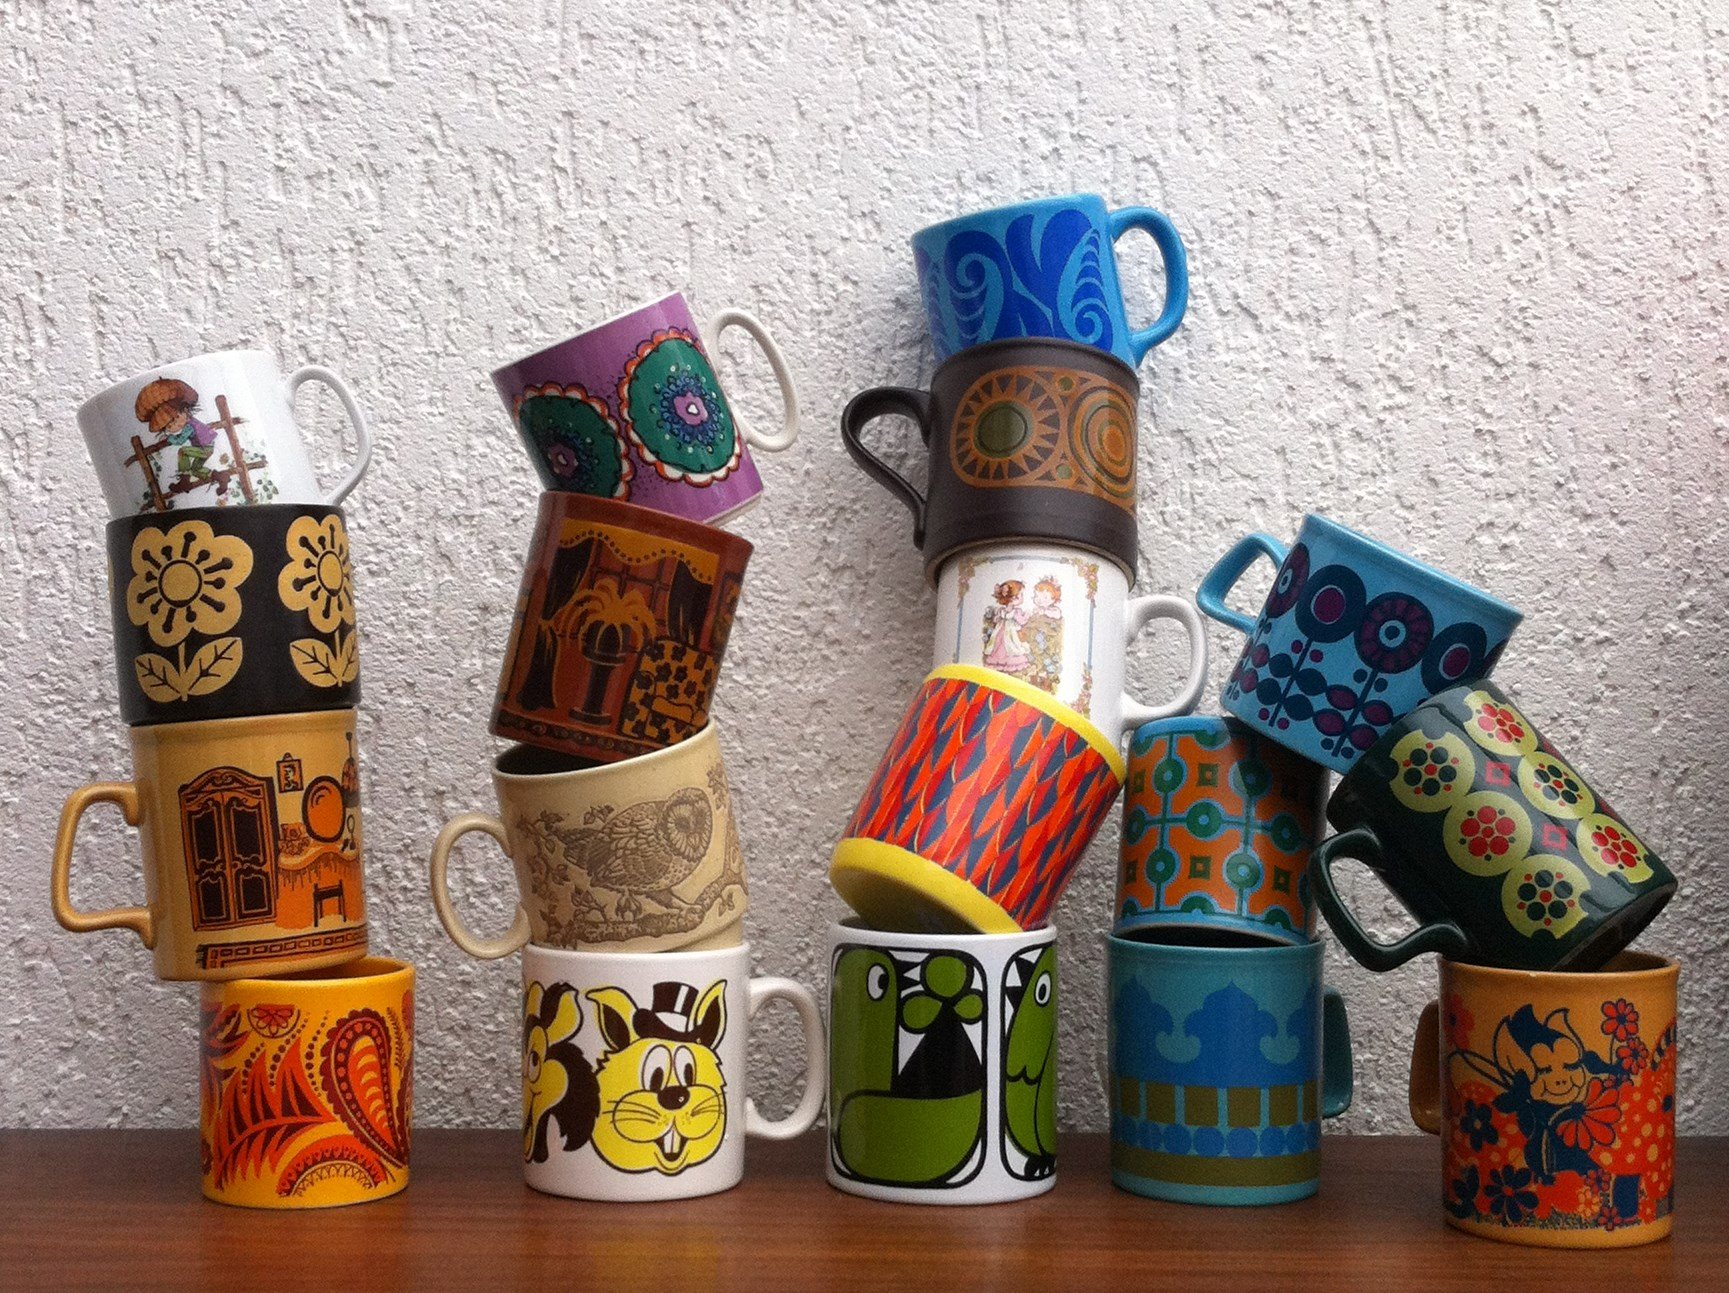 My collection of mugs